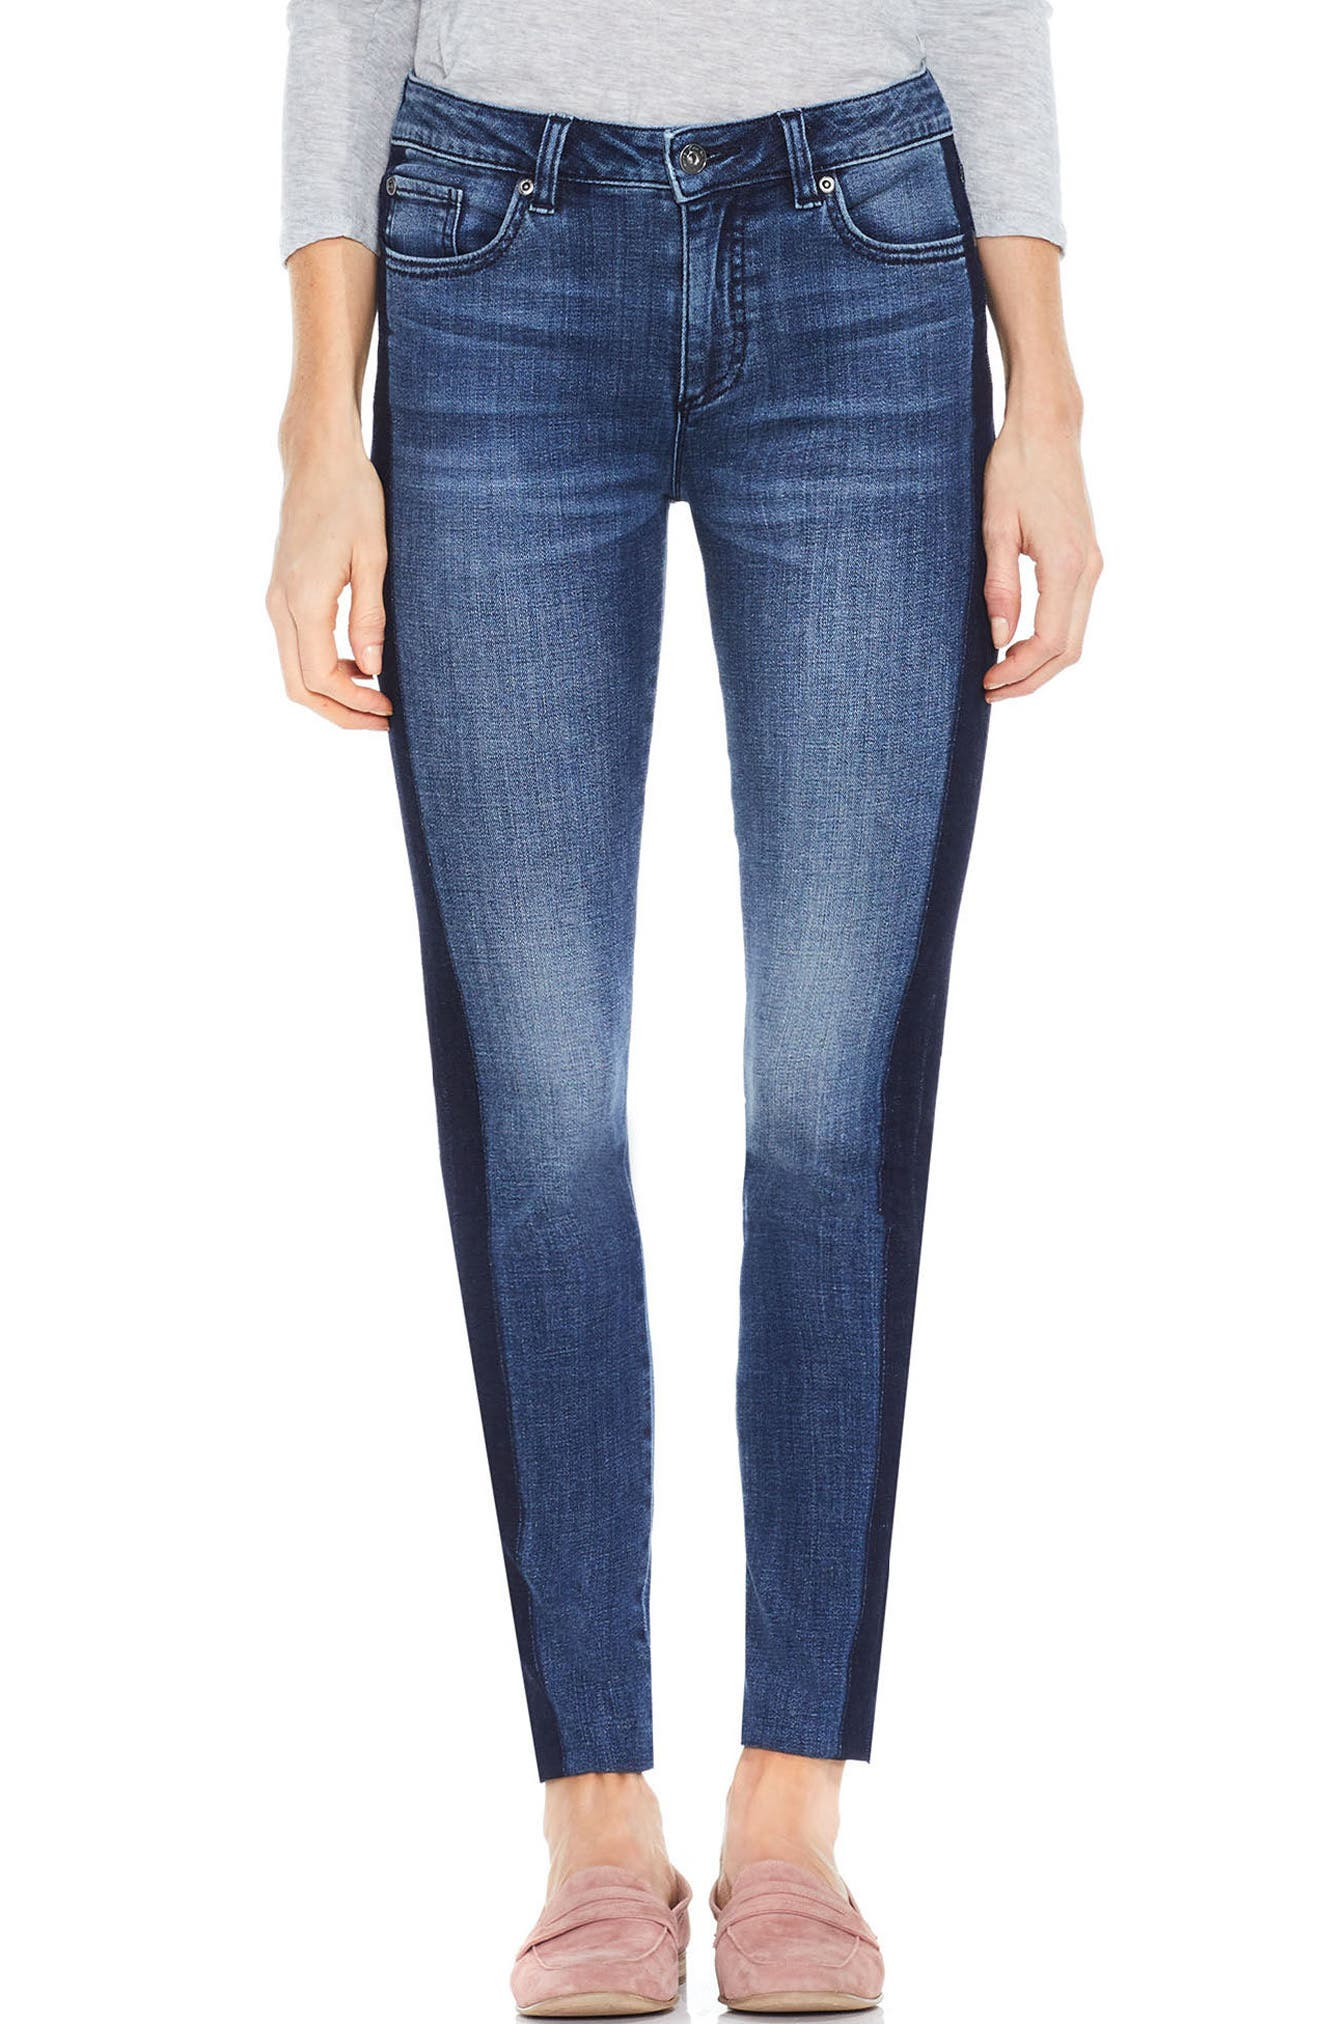 Main Image - Two by Vince Camuto Two-Tone Skinny Jeans